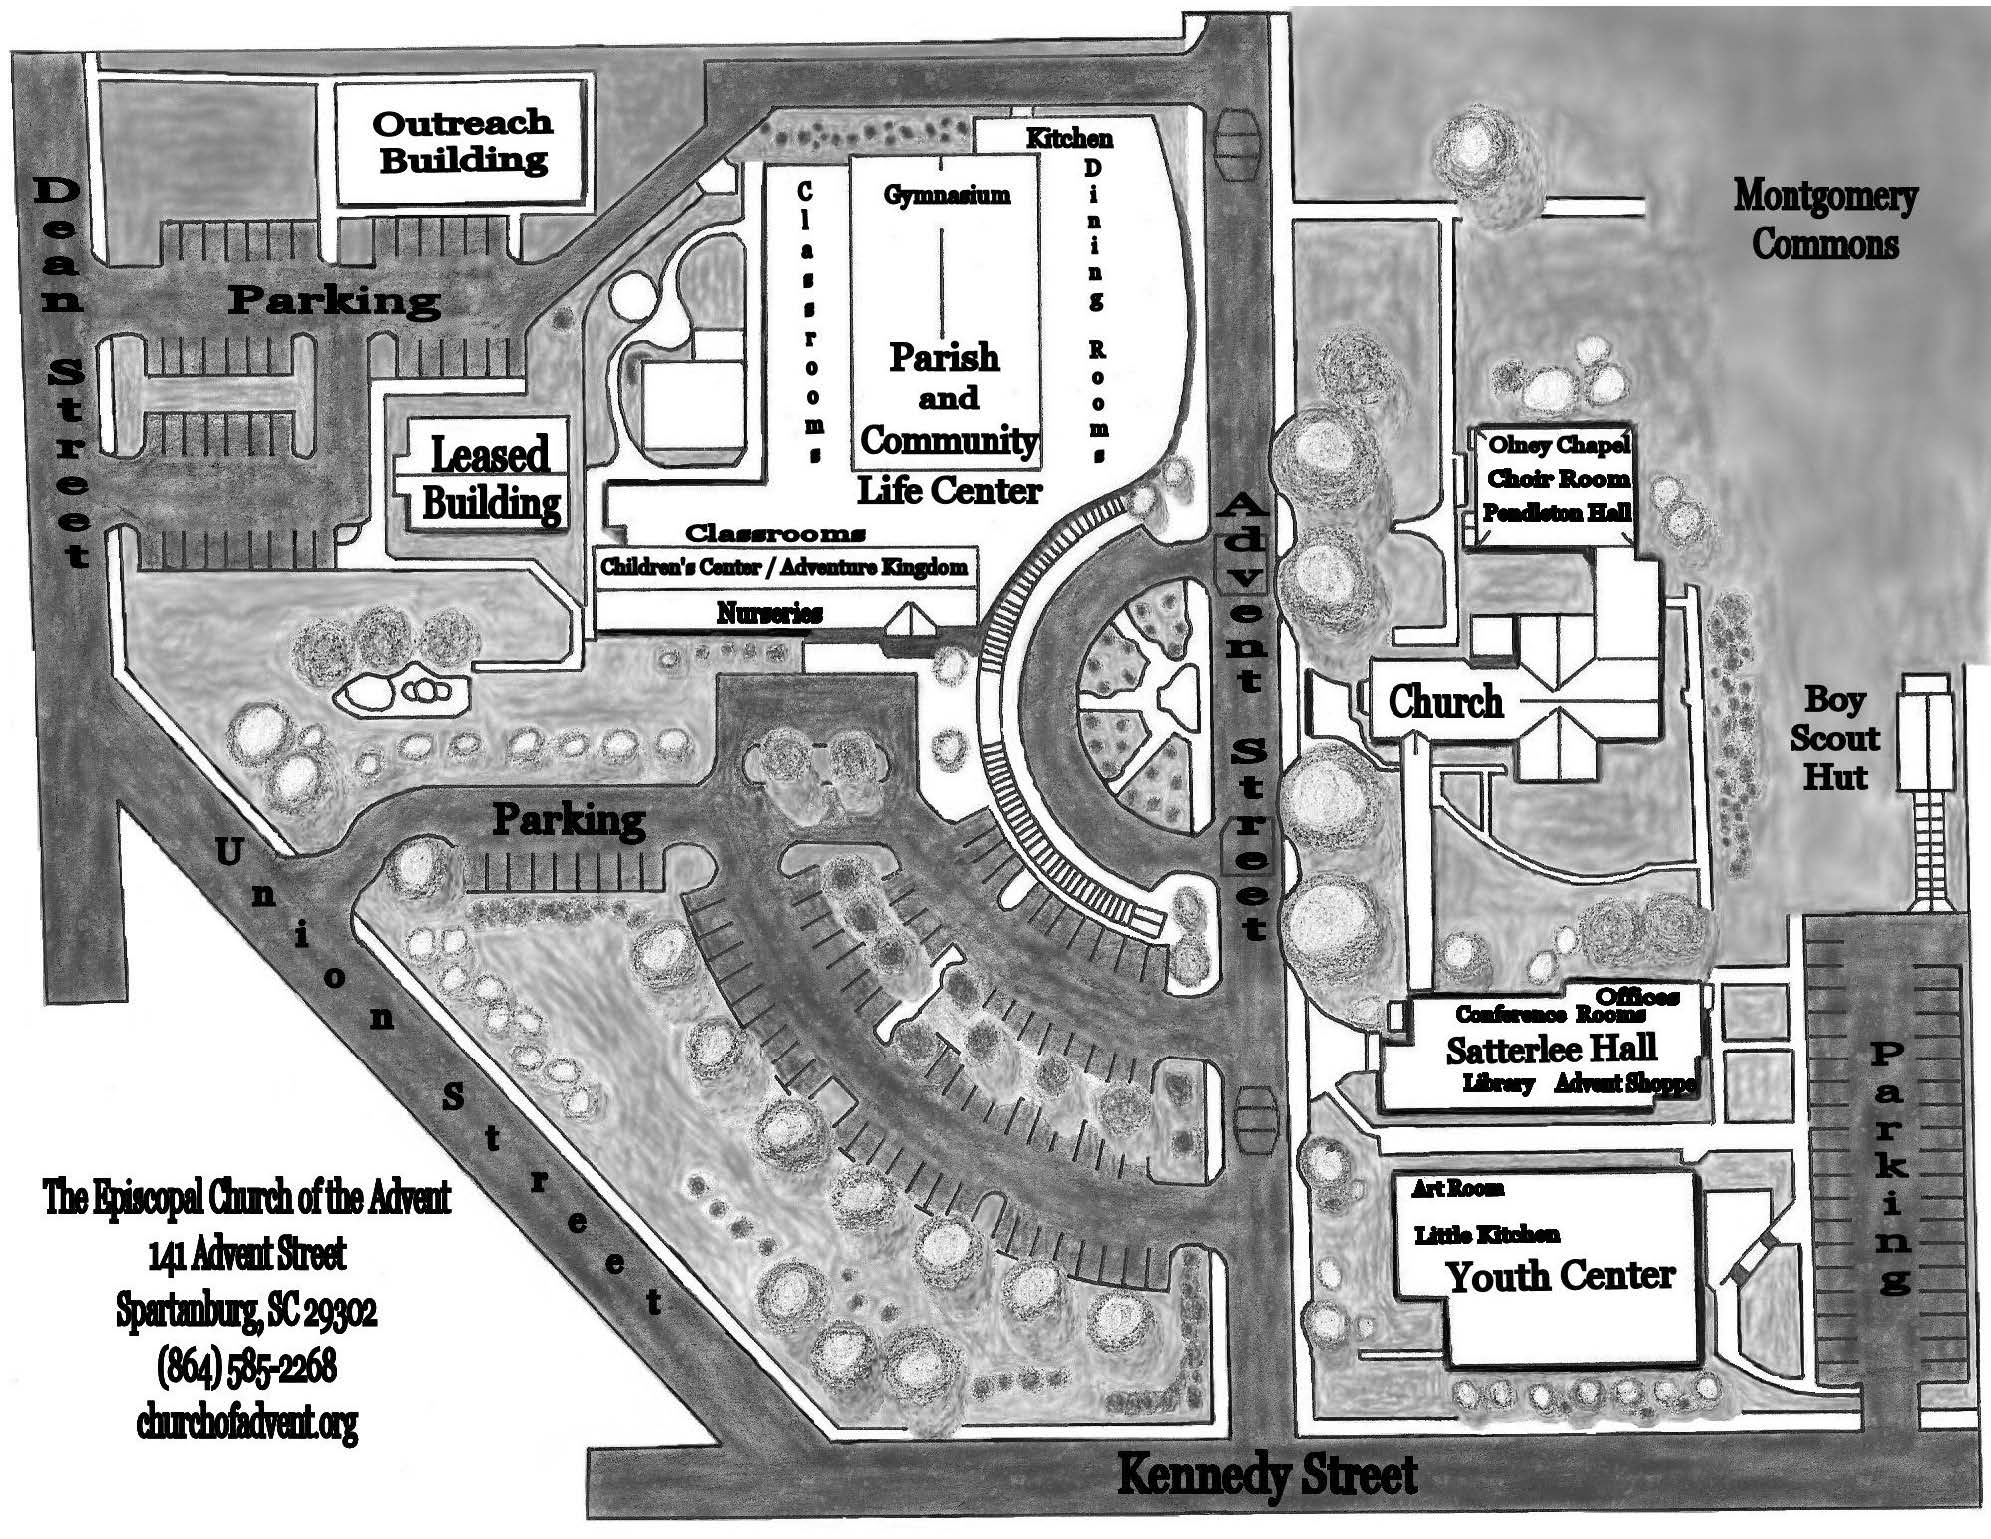 Holy Family Campus Map.Episcopal Church Of The Advent Spartanburg Sc Campus Map